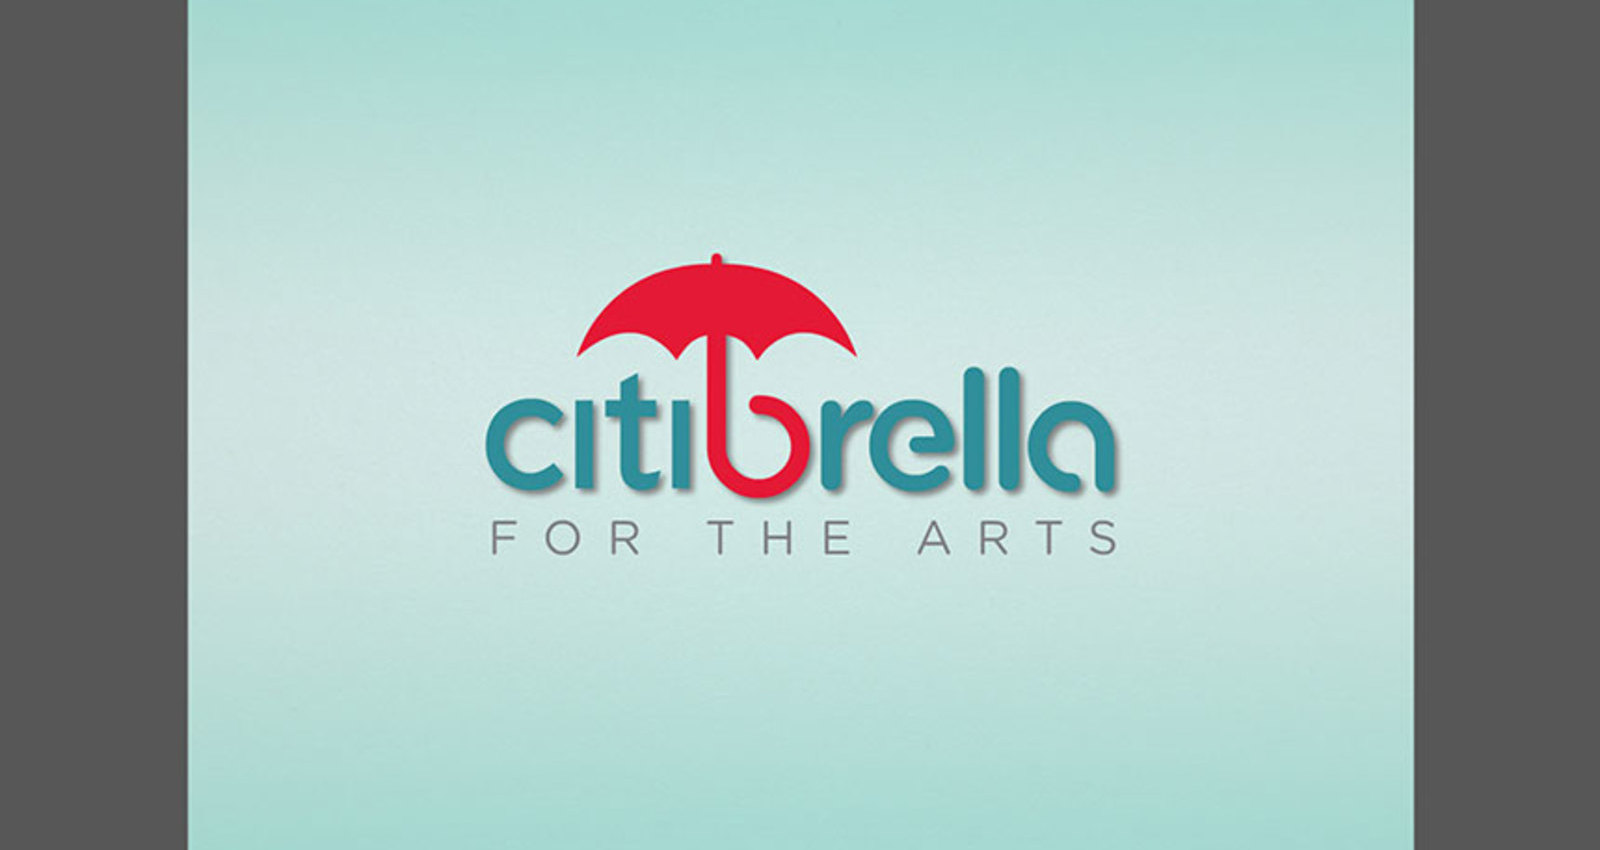 Citibrella for the Arts